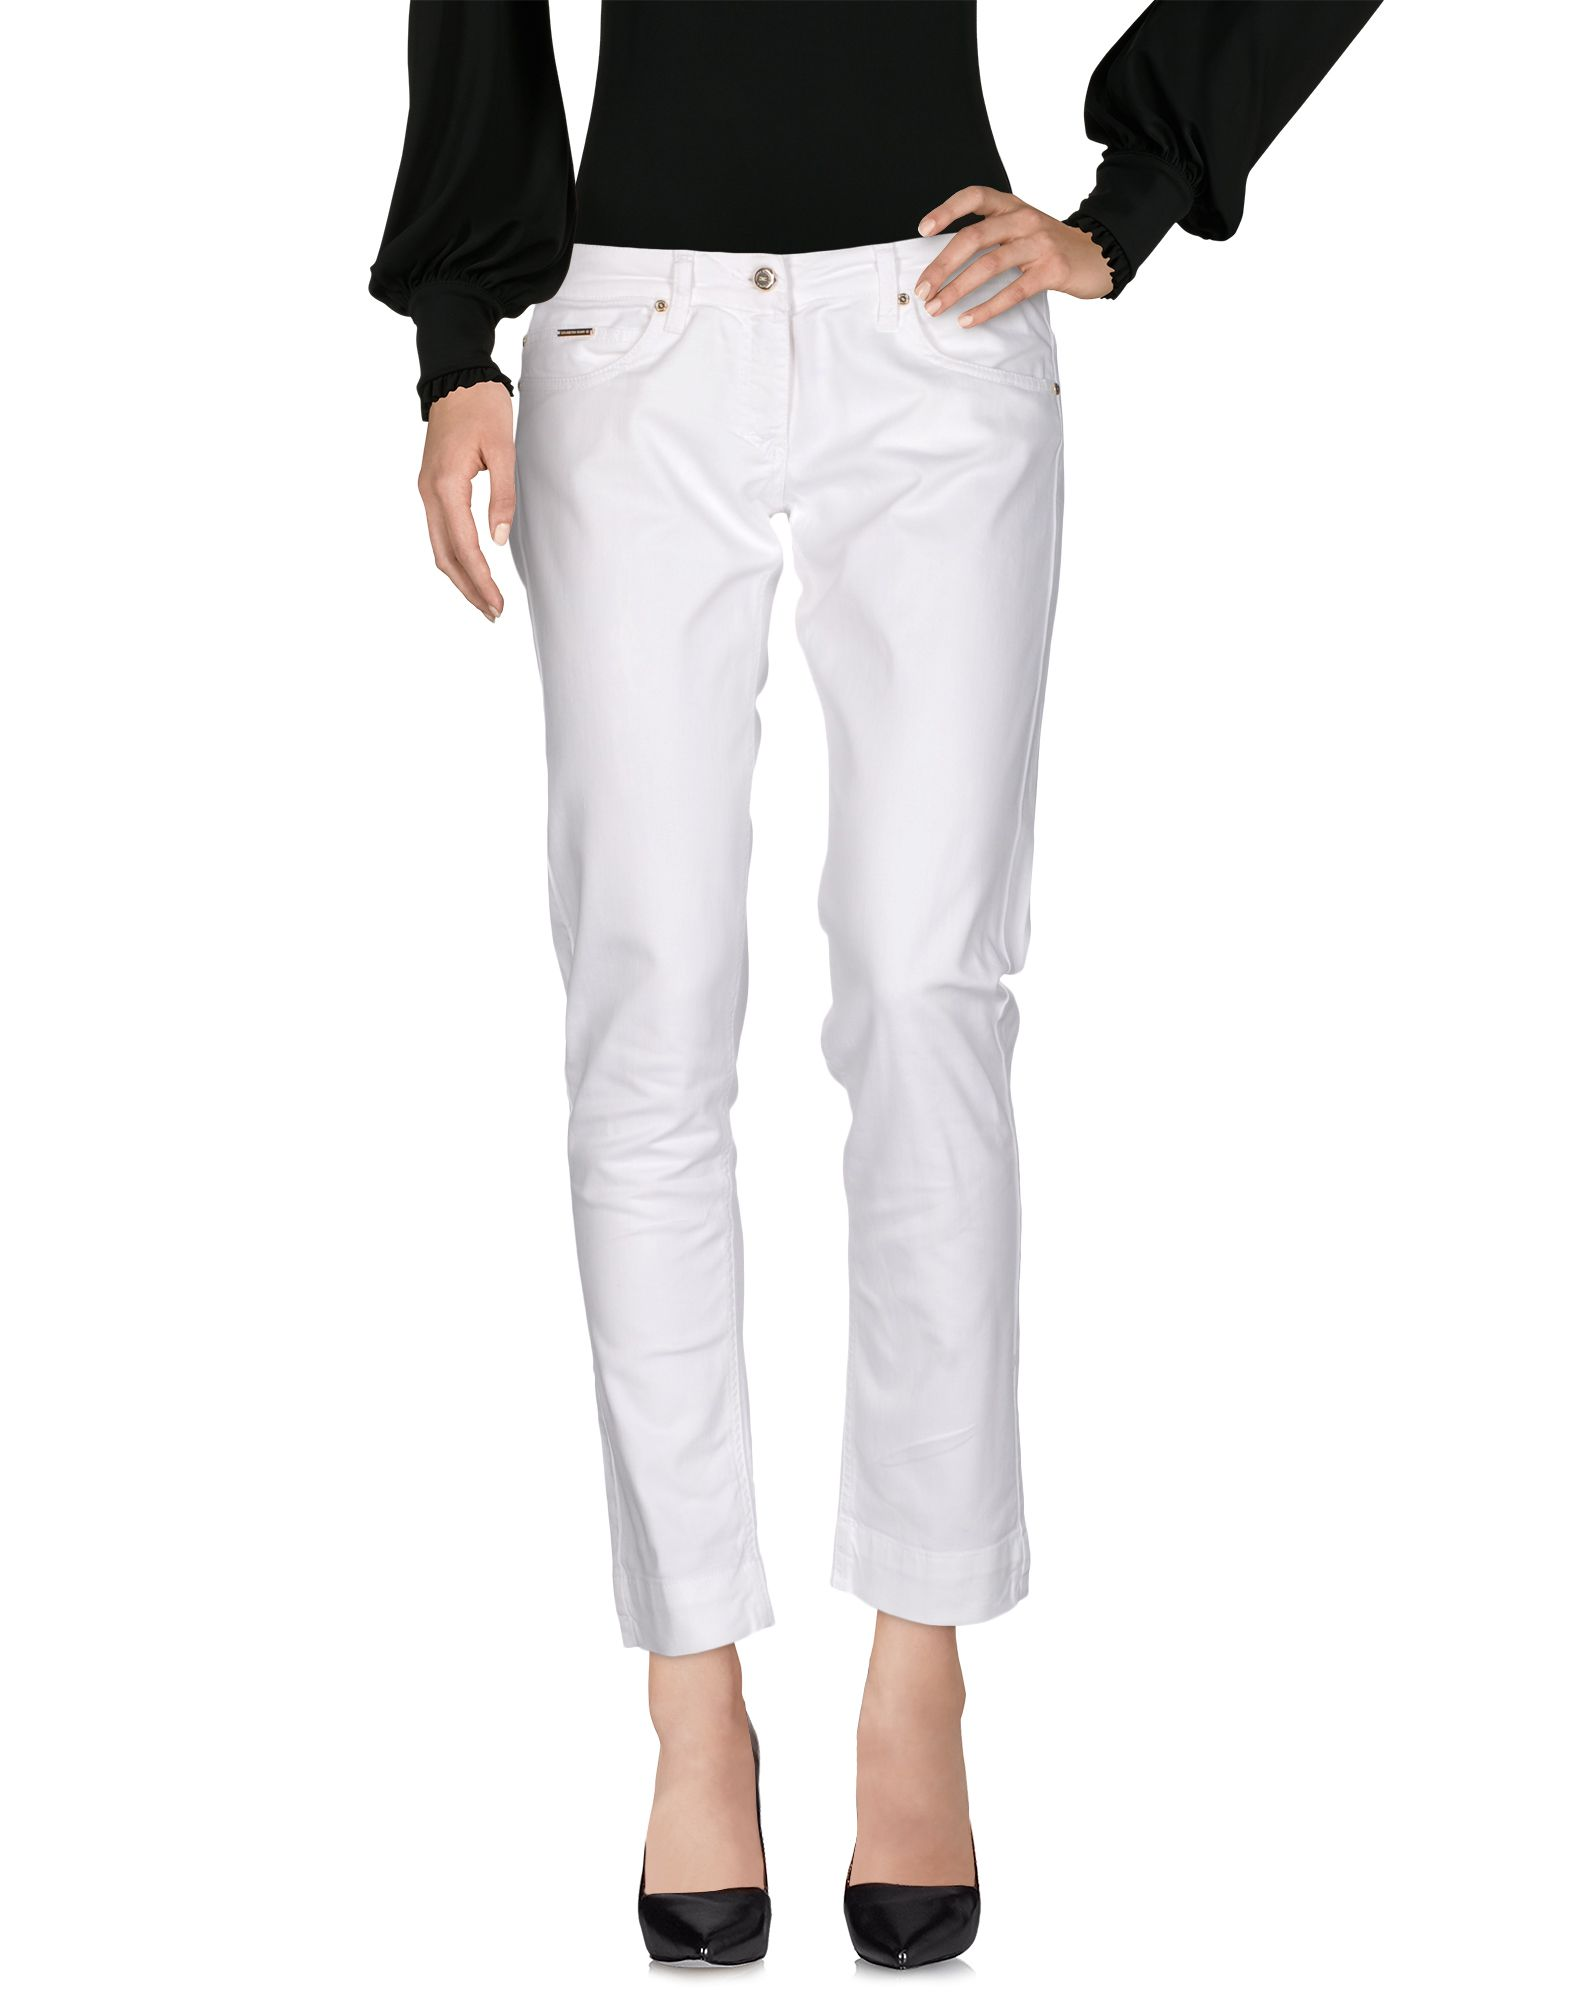 ELISABETTA FRANCHI JEANS for CELYN B. Повседневные брюки elisabetta franchi jeans for celyn b брюки капри